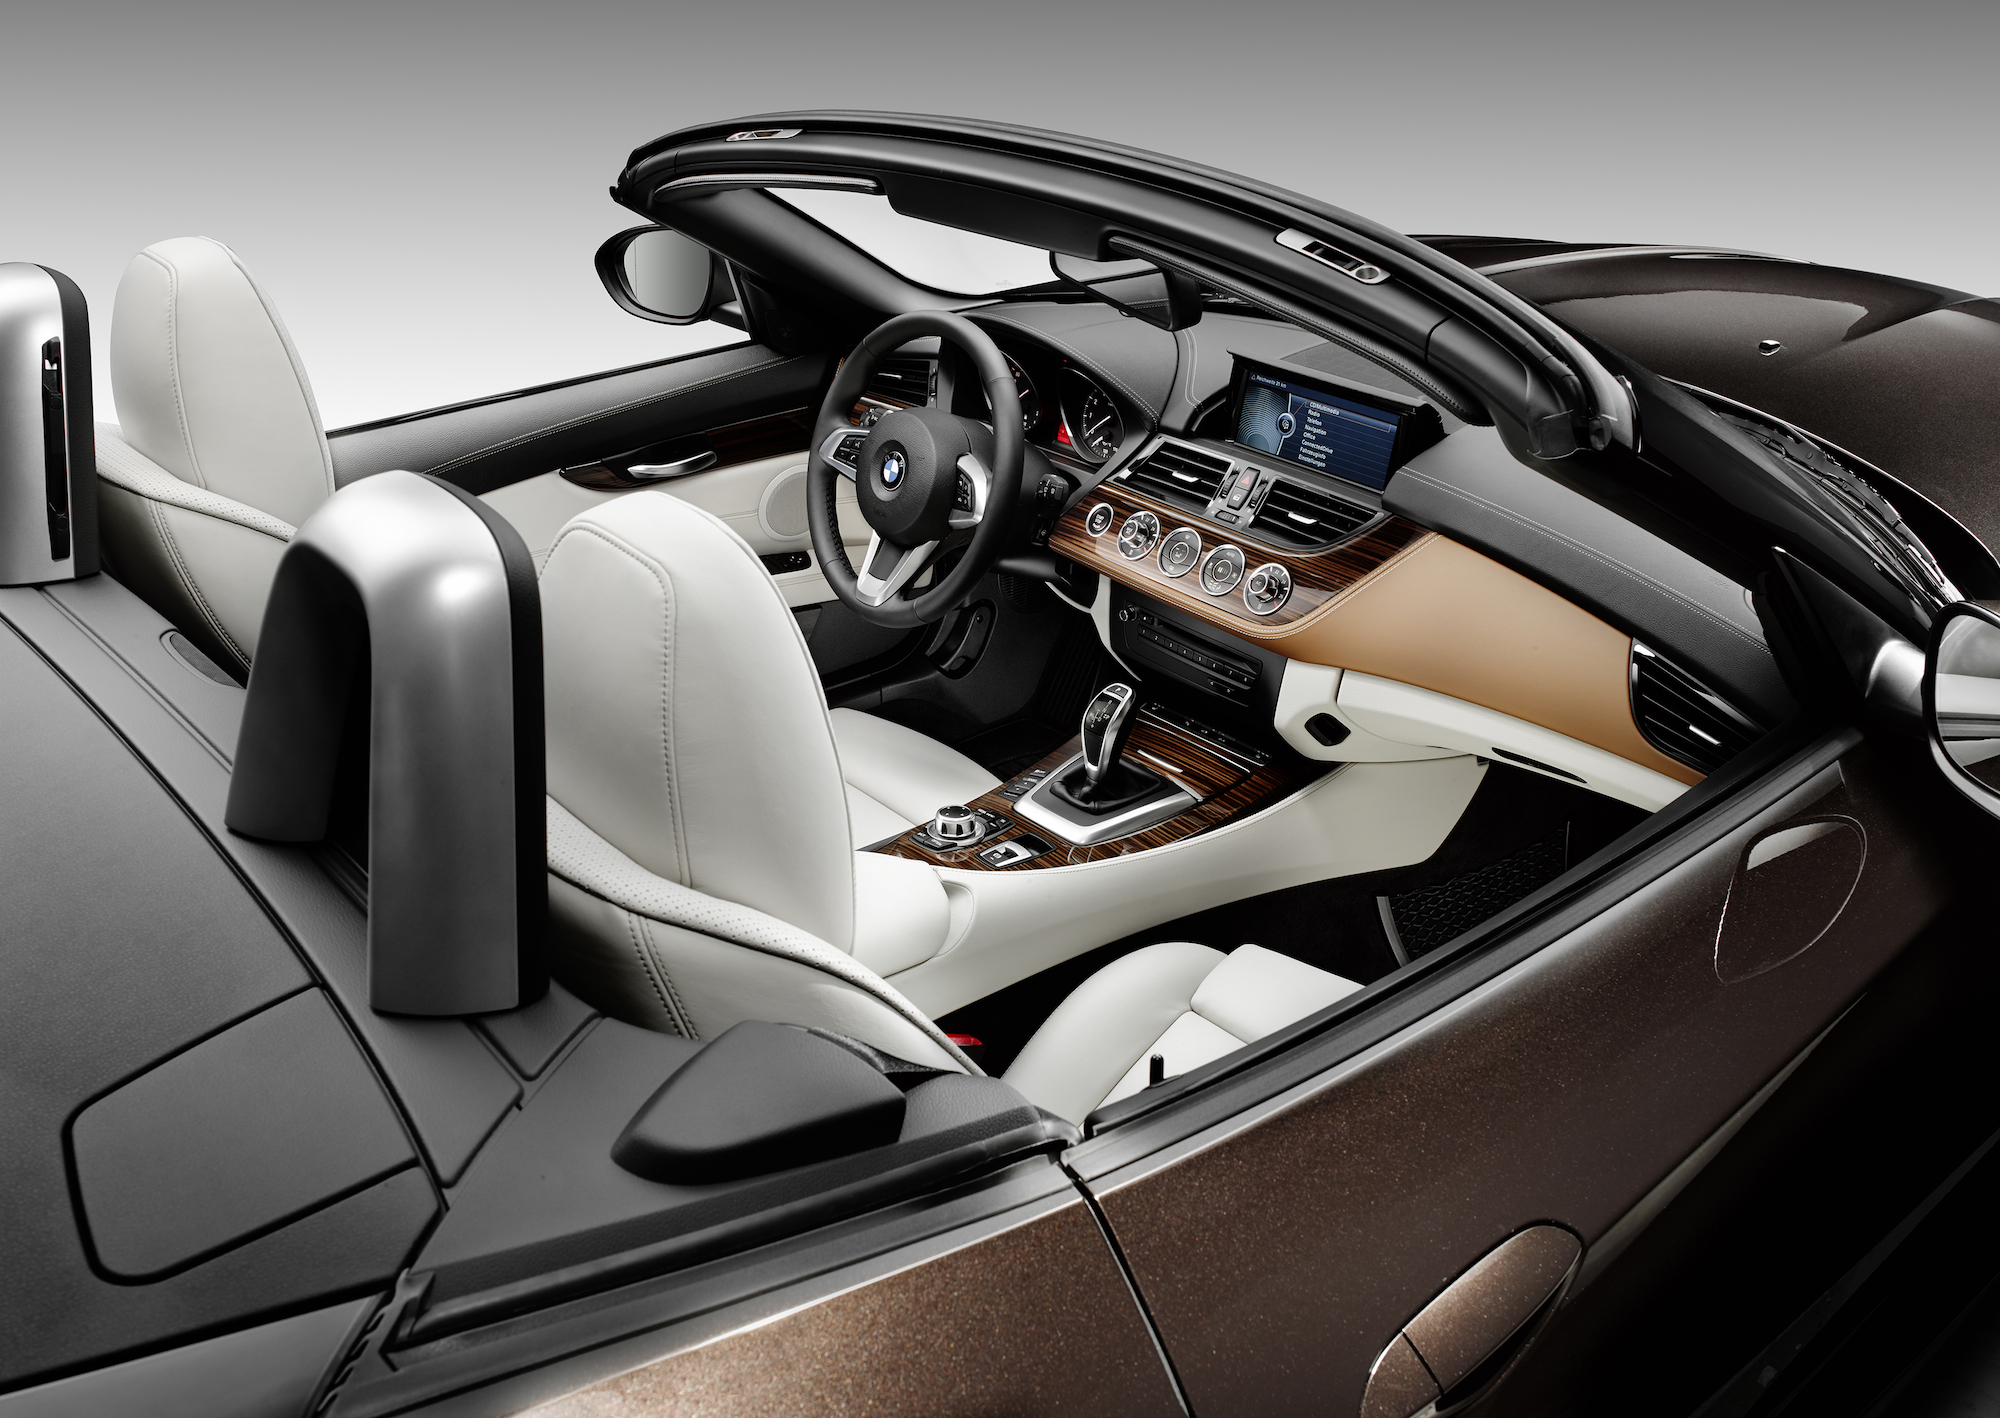 BMW's Z4 Roadster Gets a Modern Update